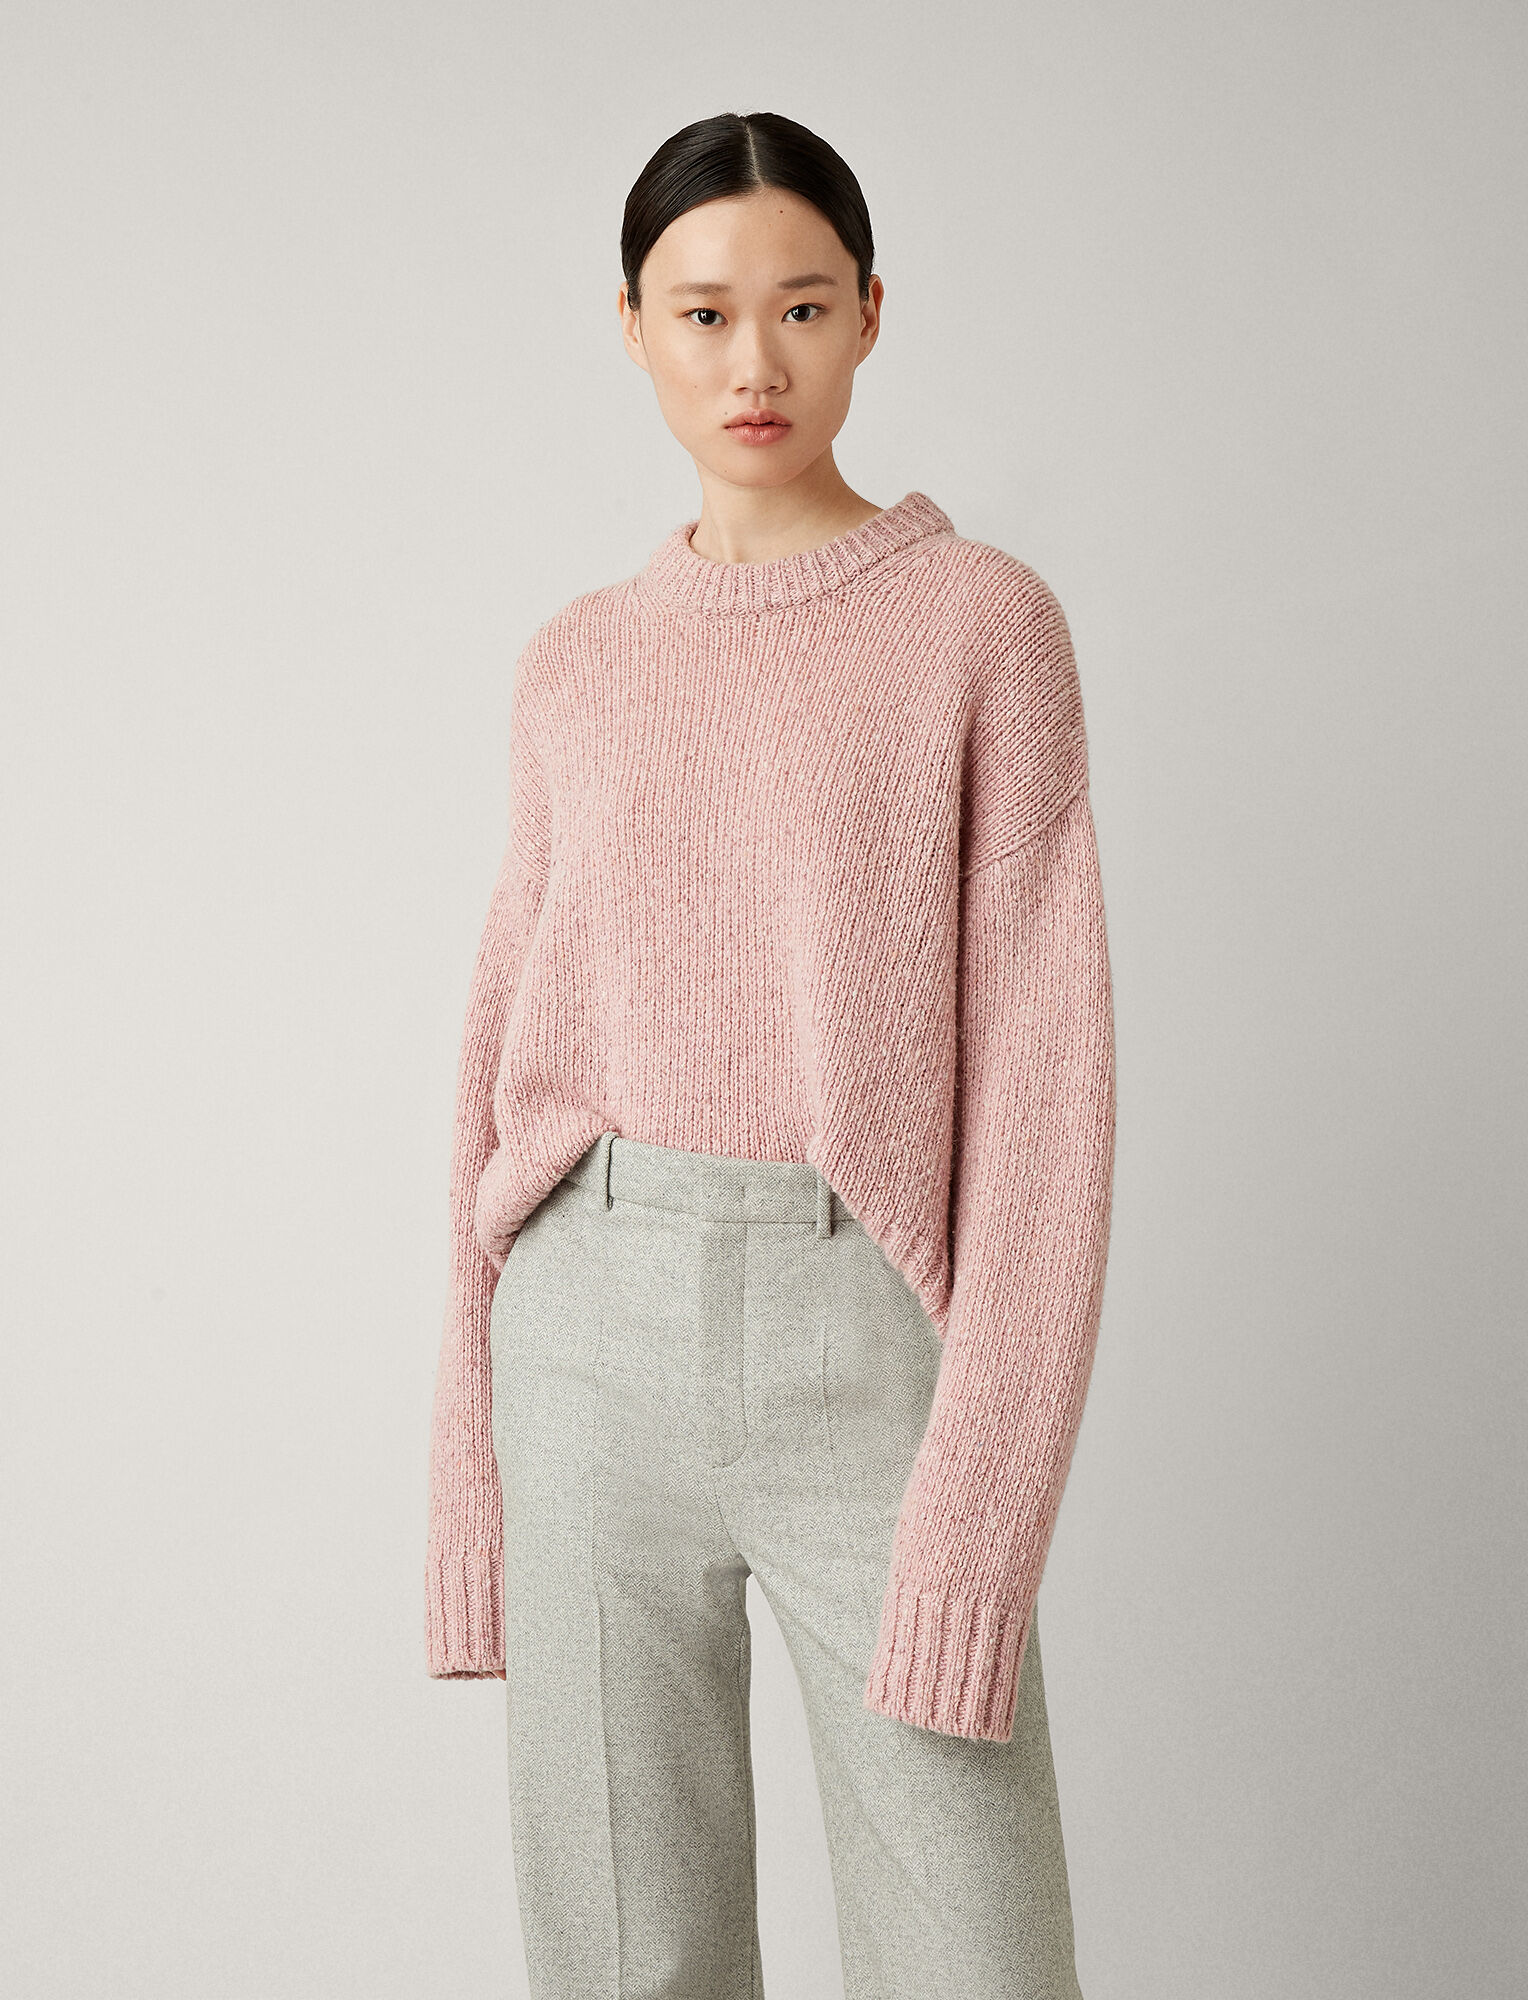 Joseph, Tweed Knit, in